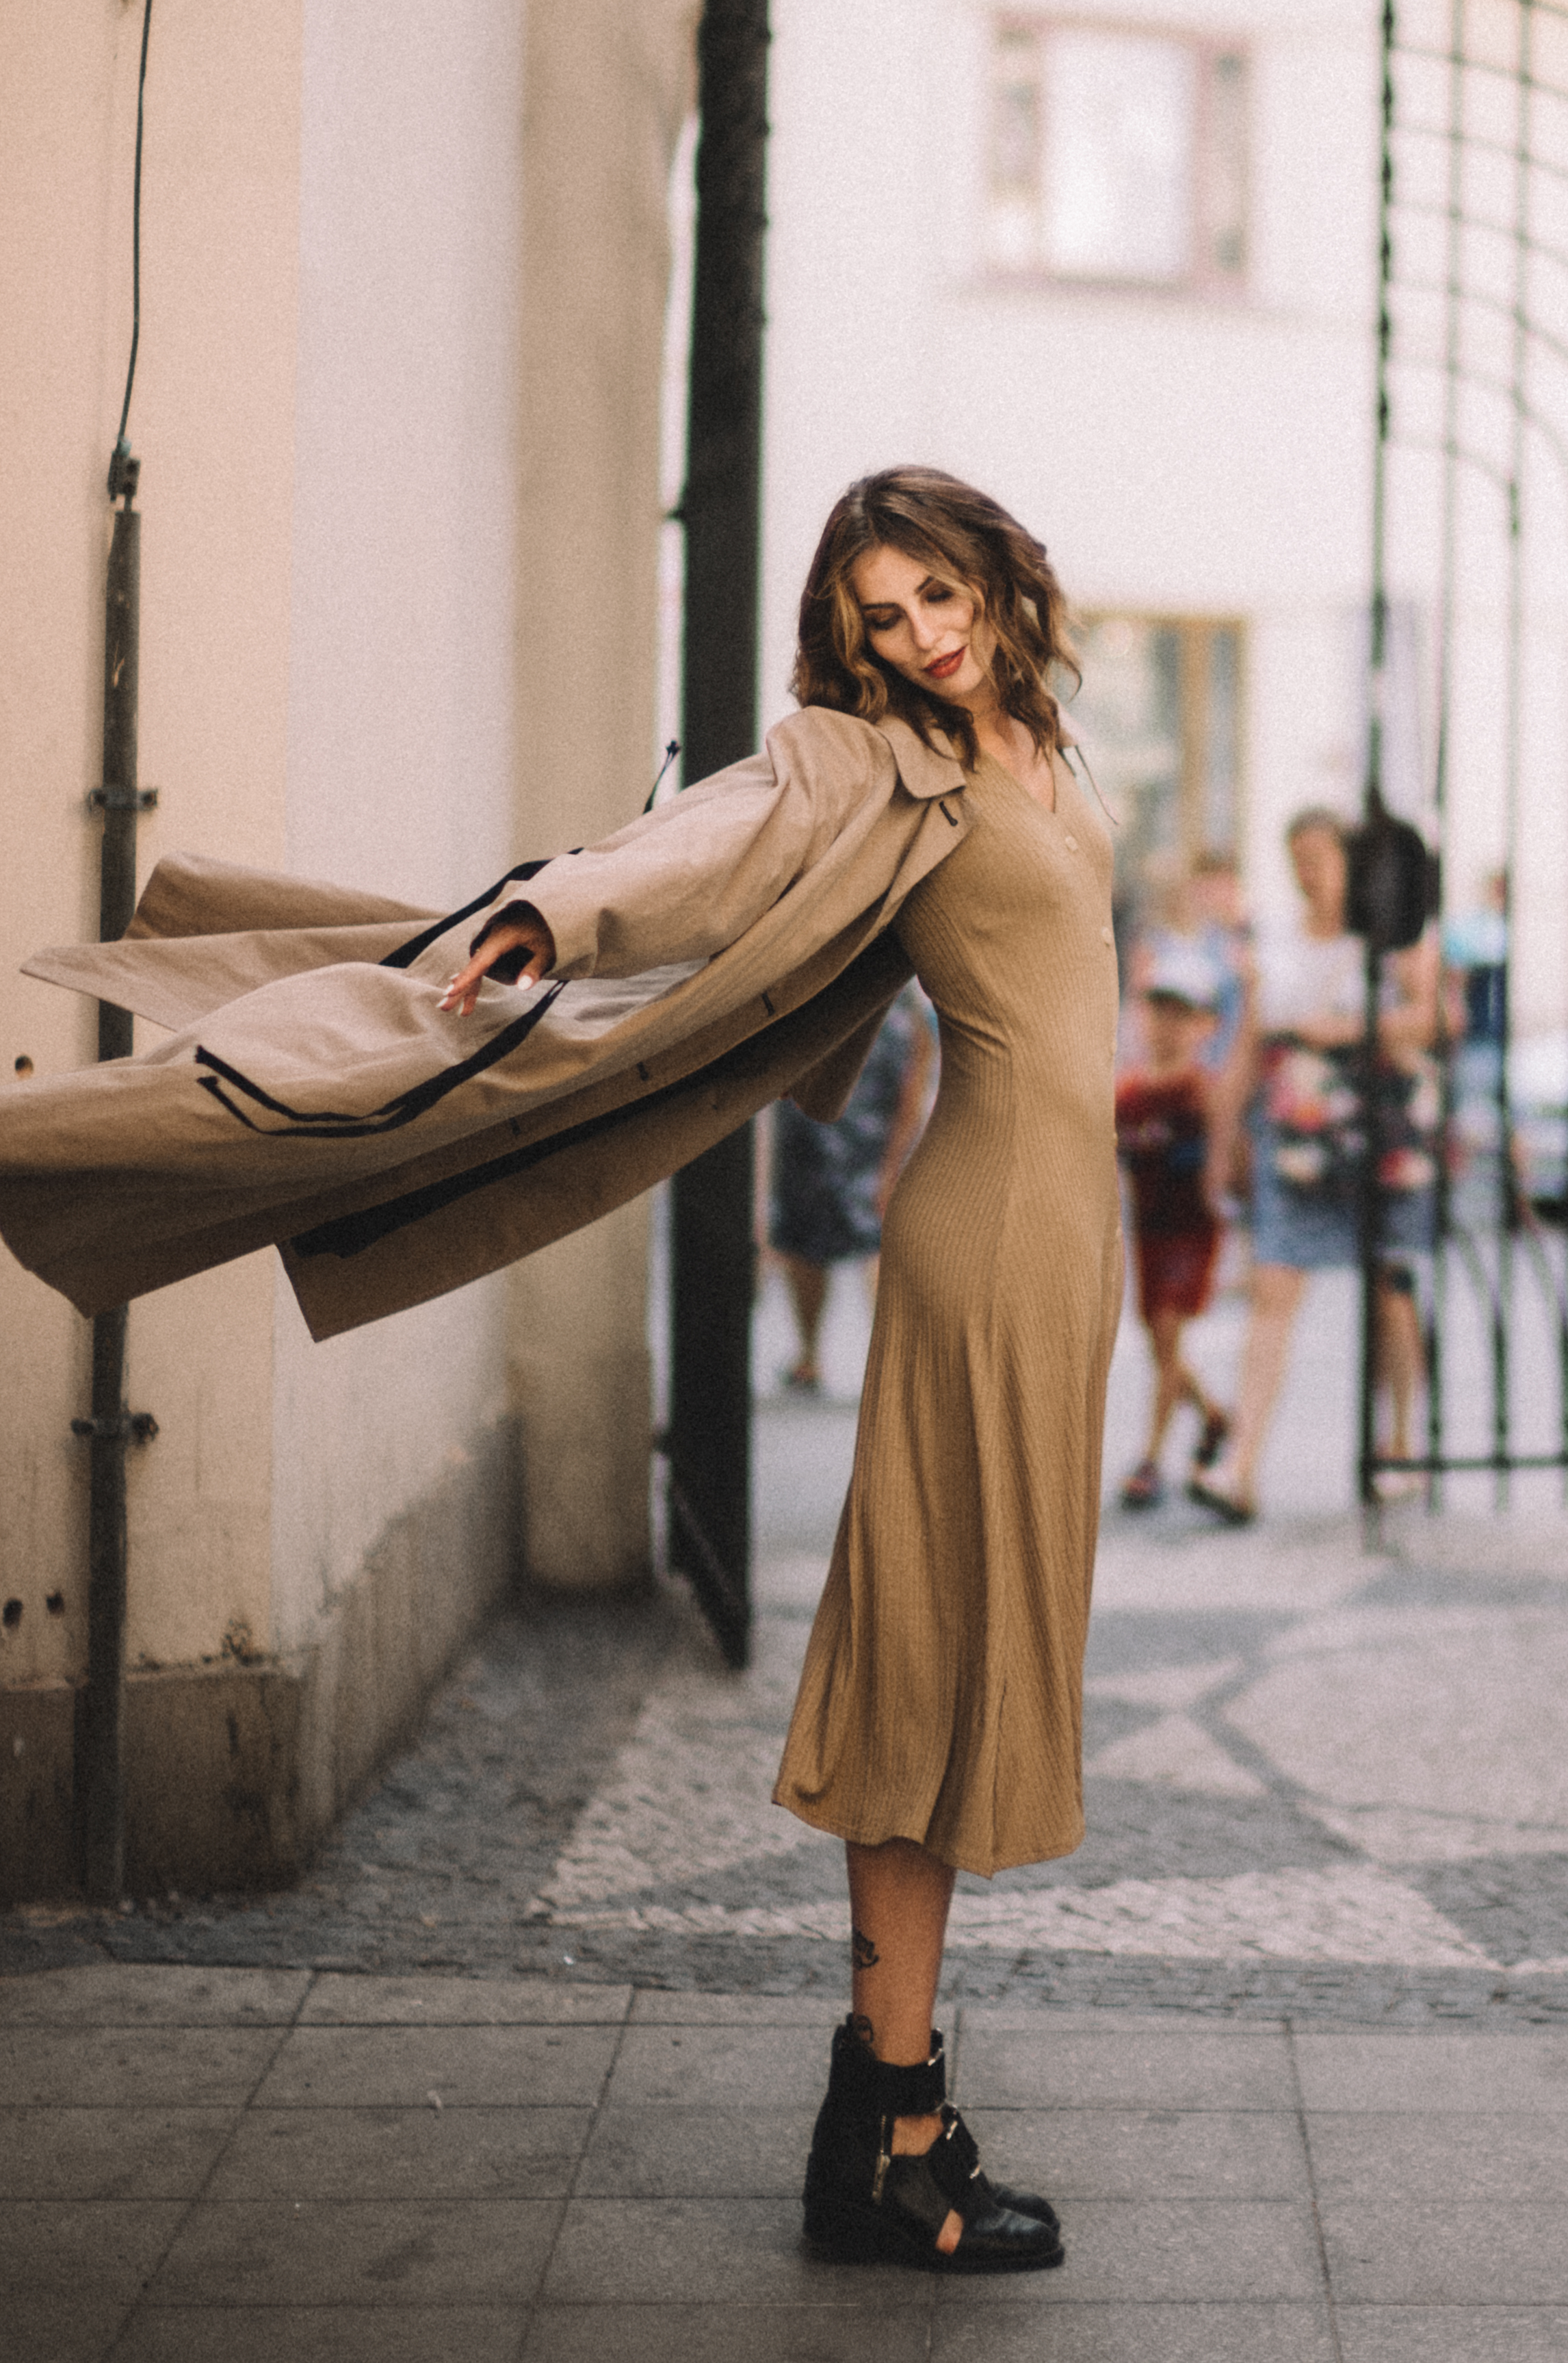 Masha Sedgwick | About finding the right work-life balance | nude dress | autumn style | outfit | fashion | effortless | sexy, cool, minimal, feminine